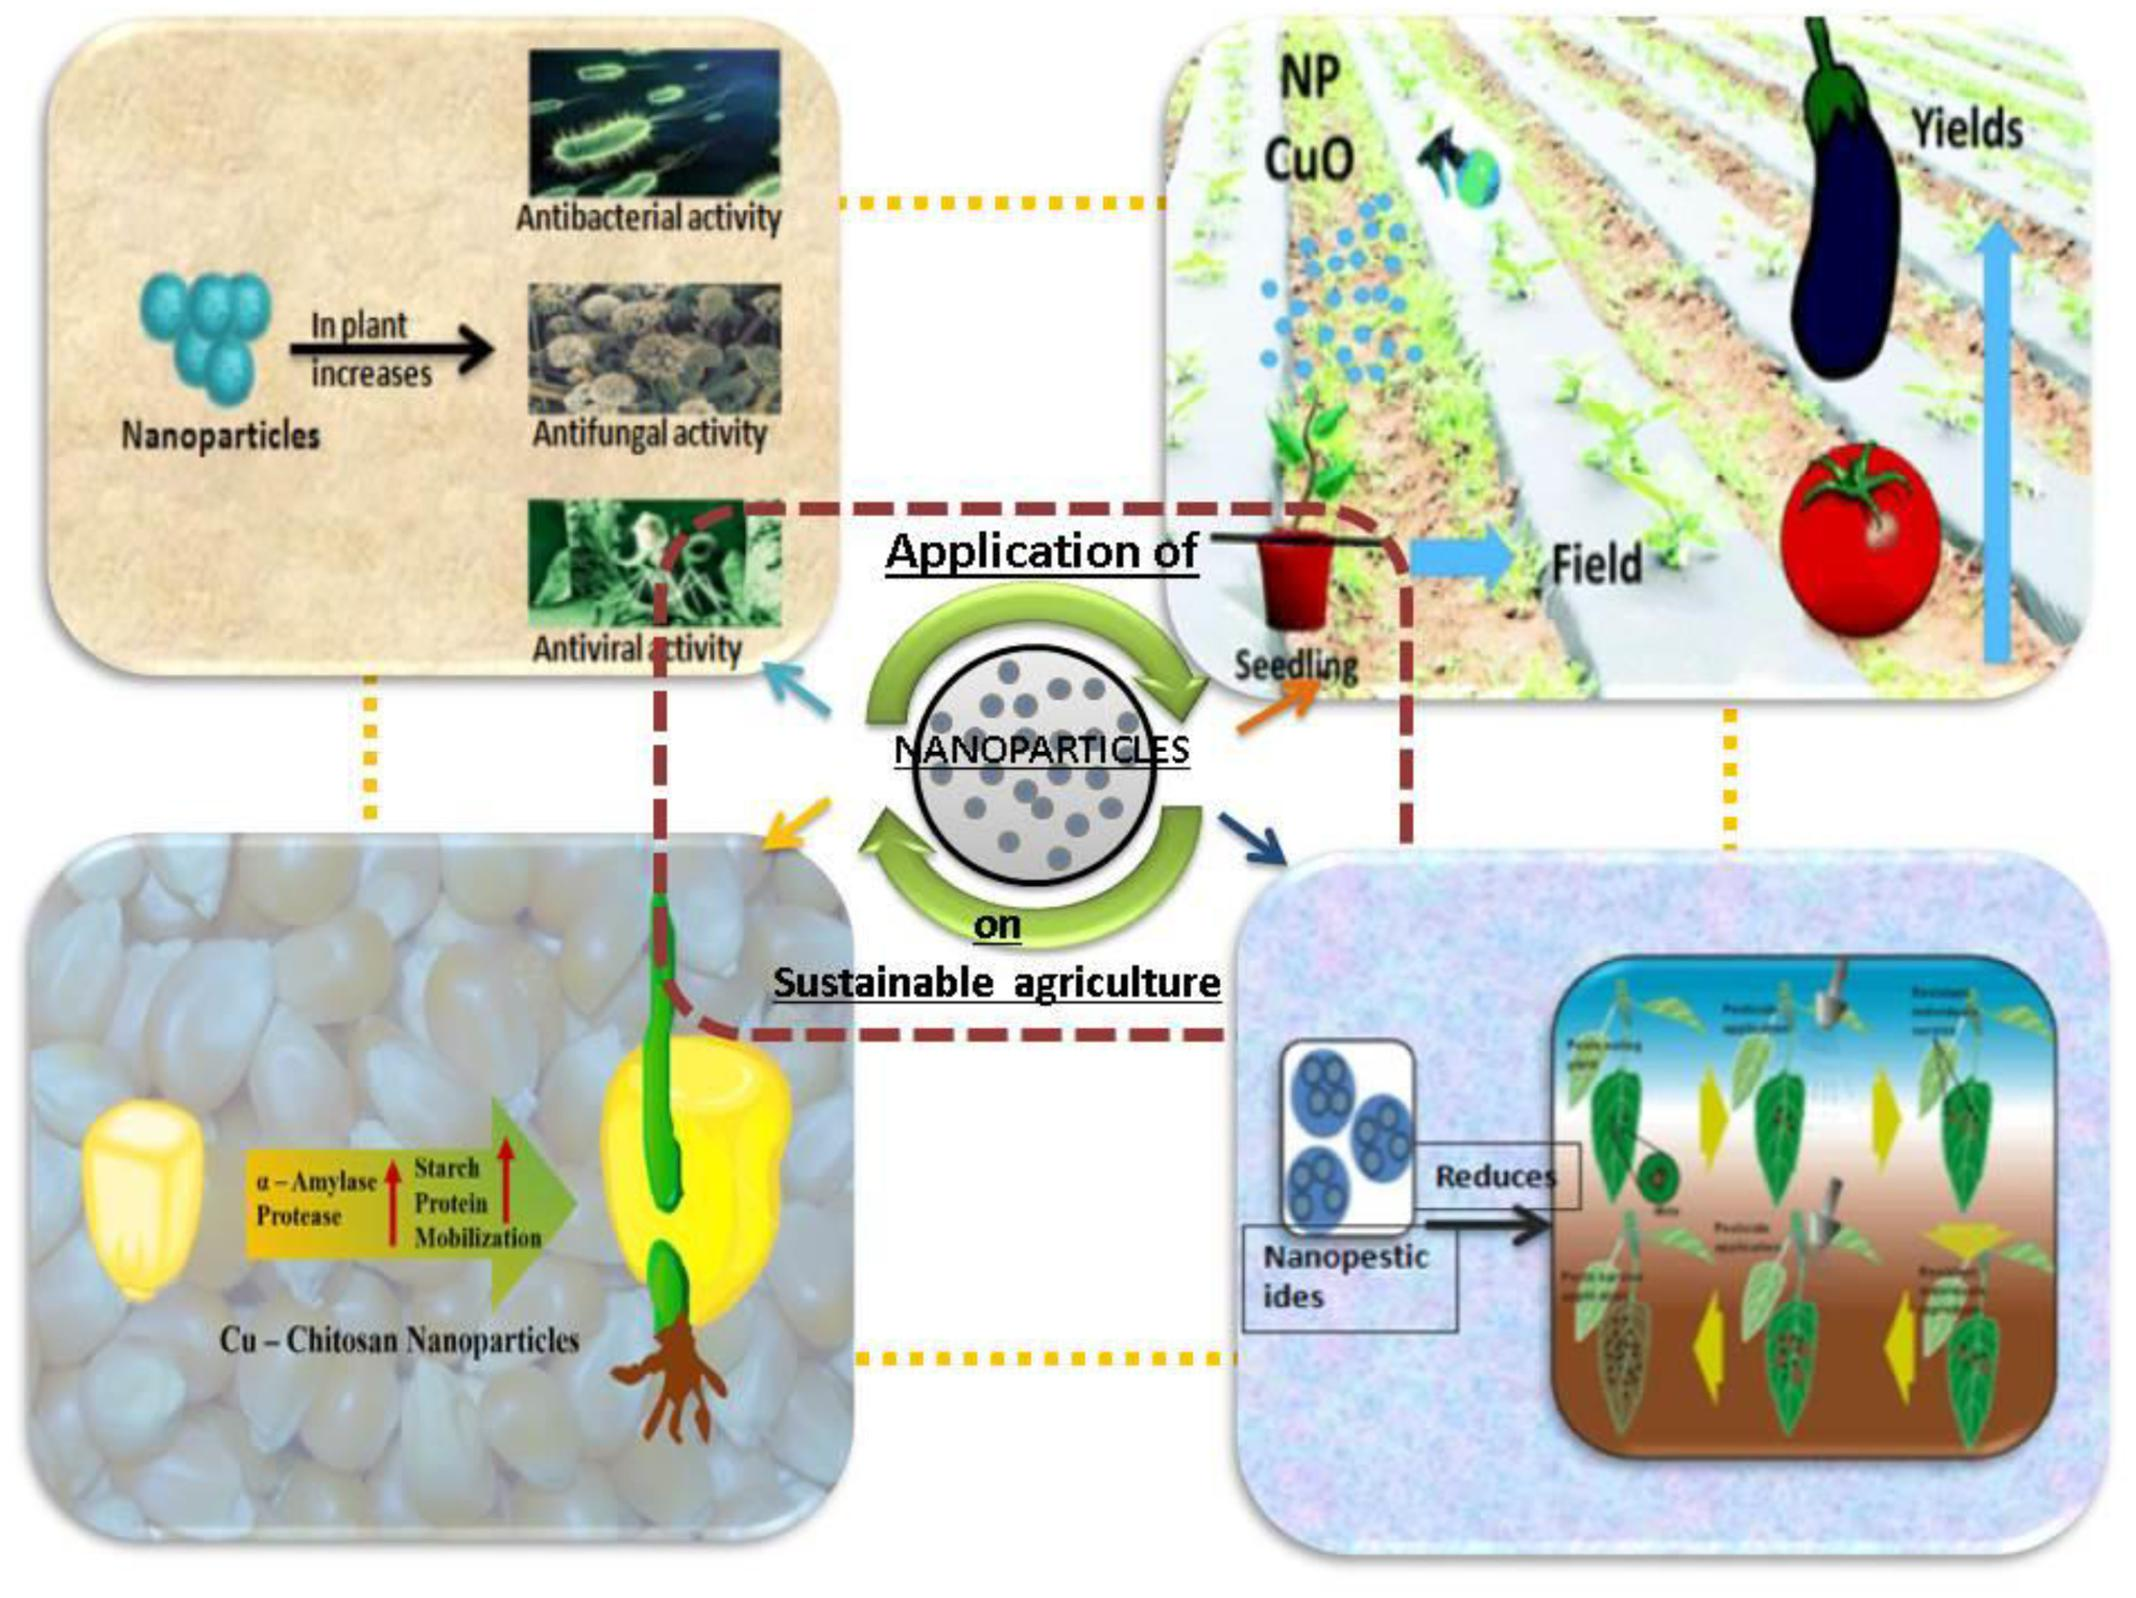 Frontiers | Nanotechnology in Sustainable Agriculture